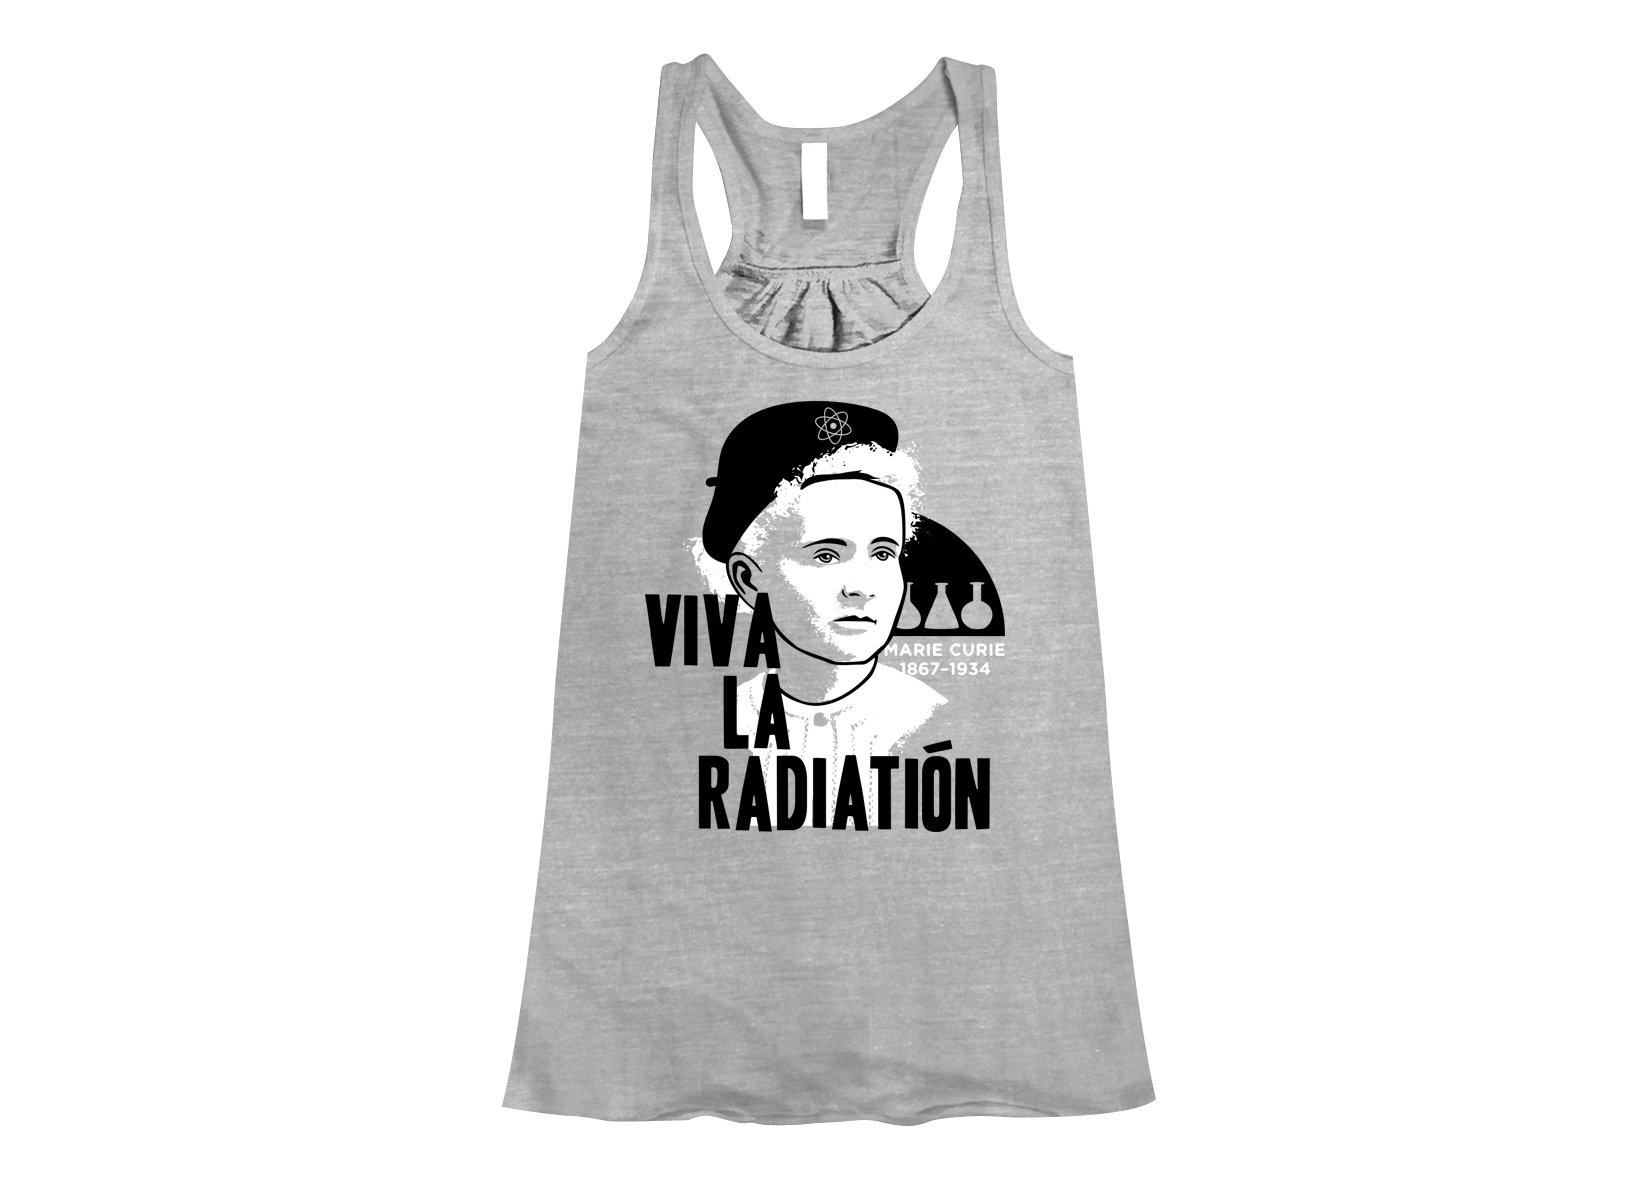 Viva La Radiation on Womens Tanks T-Shirt